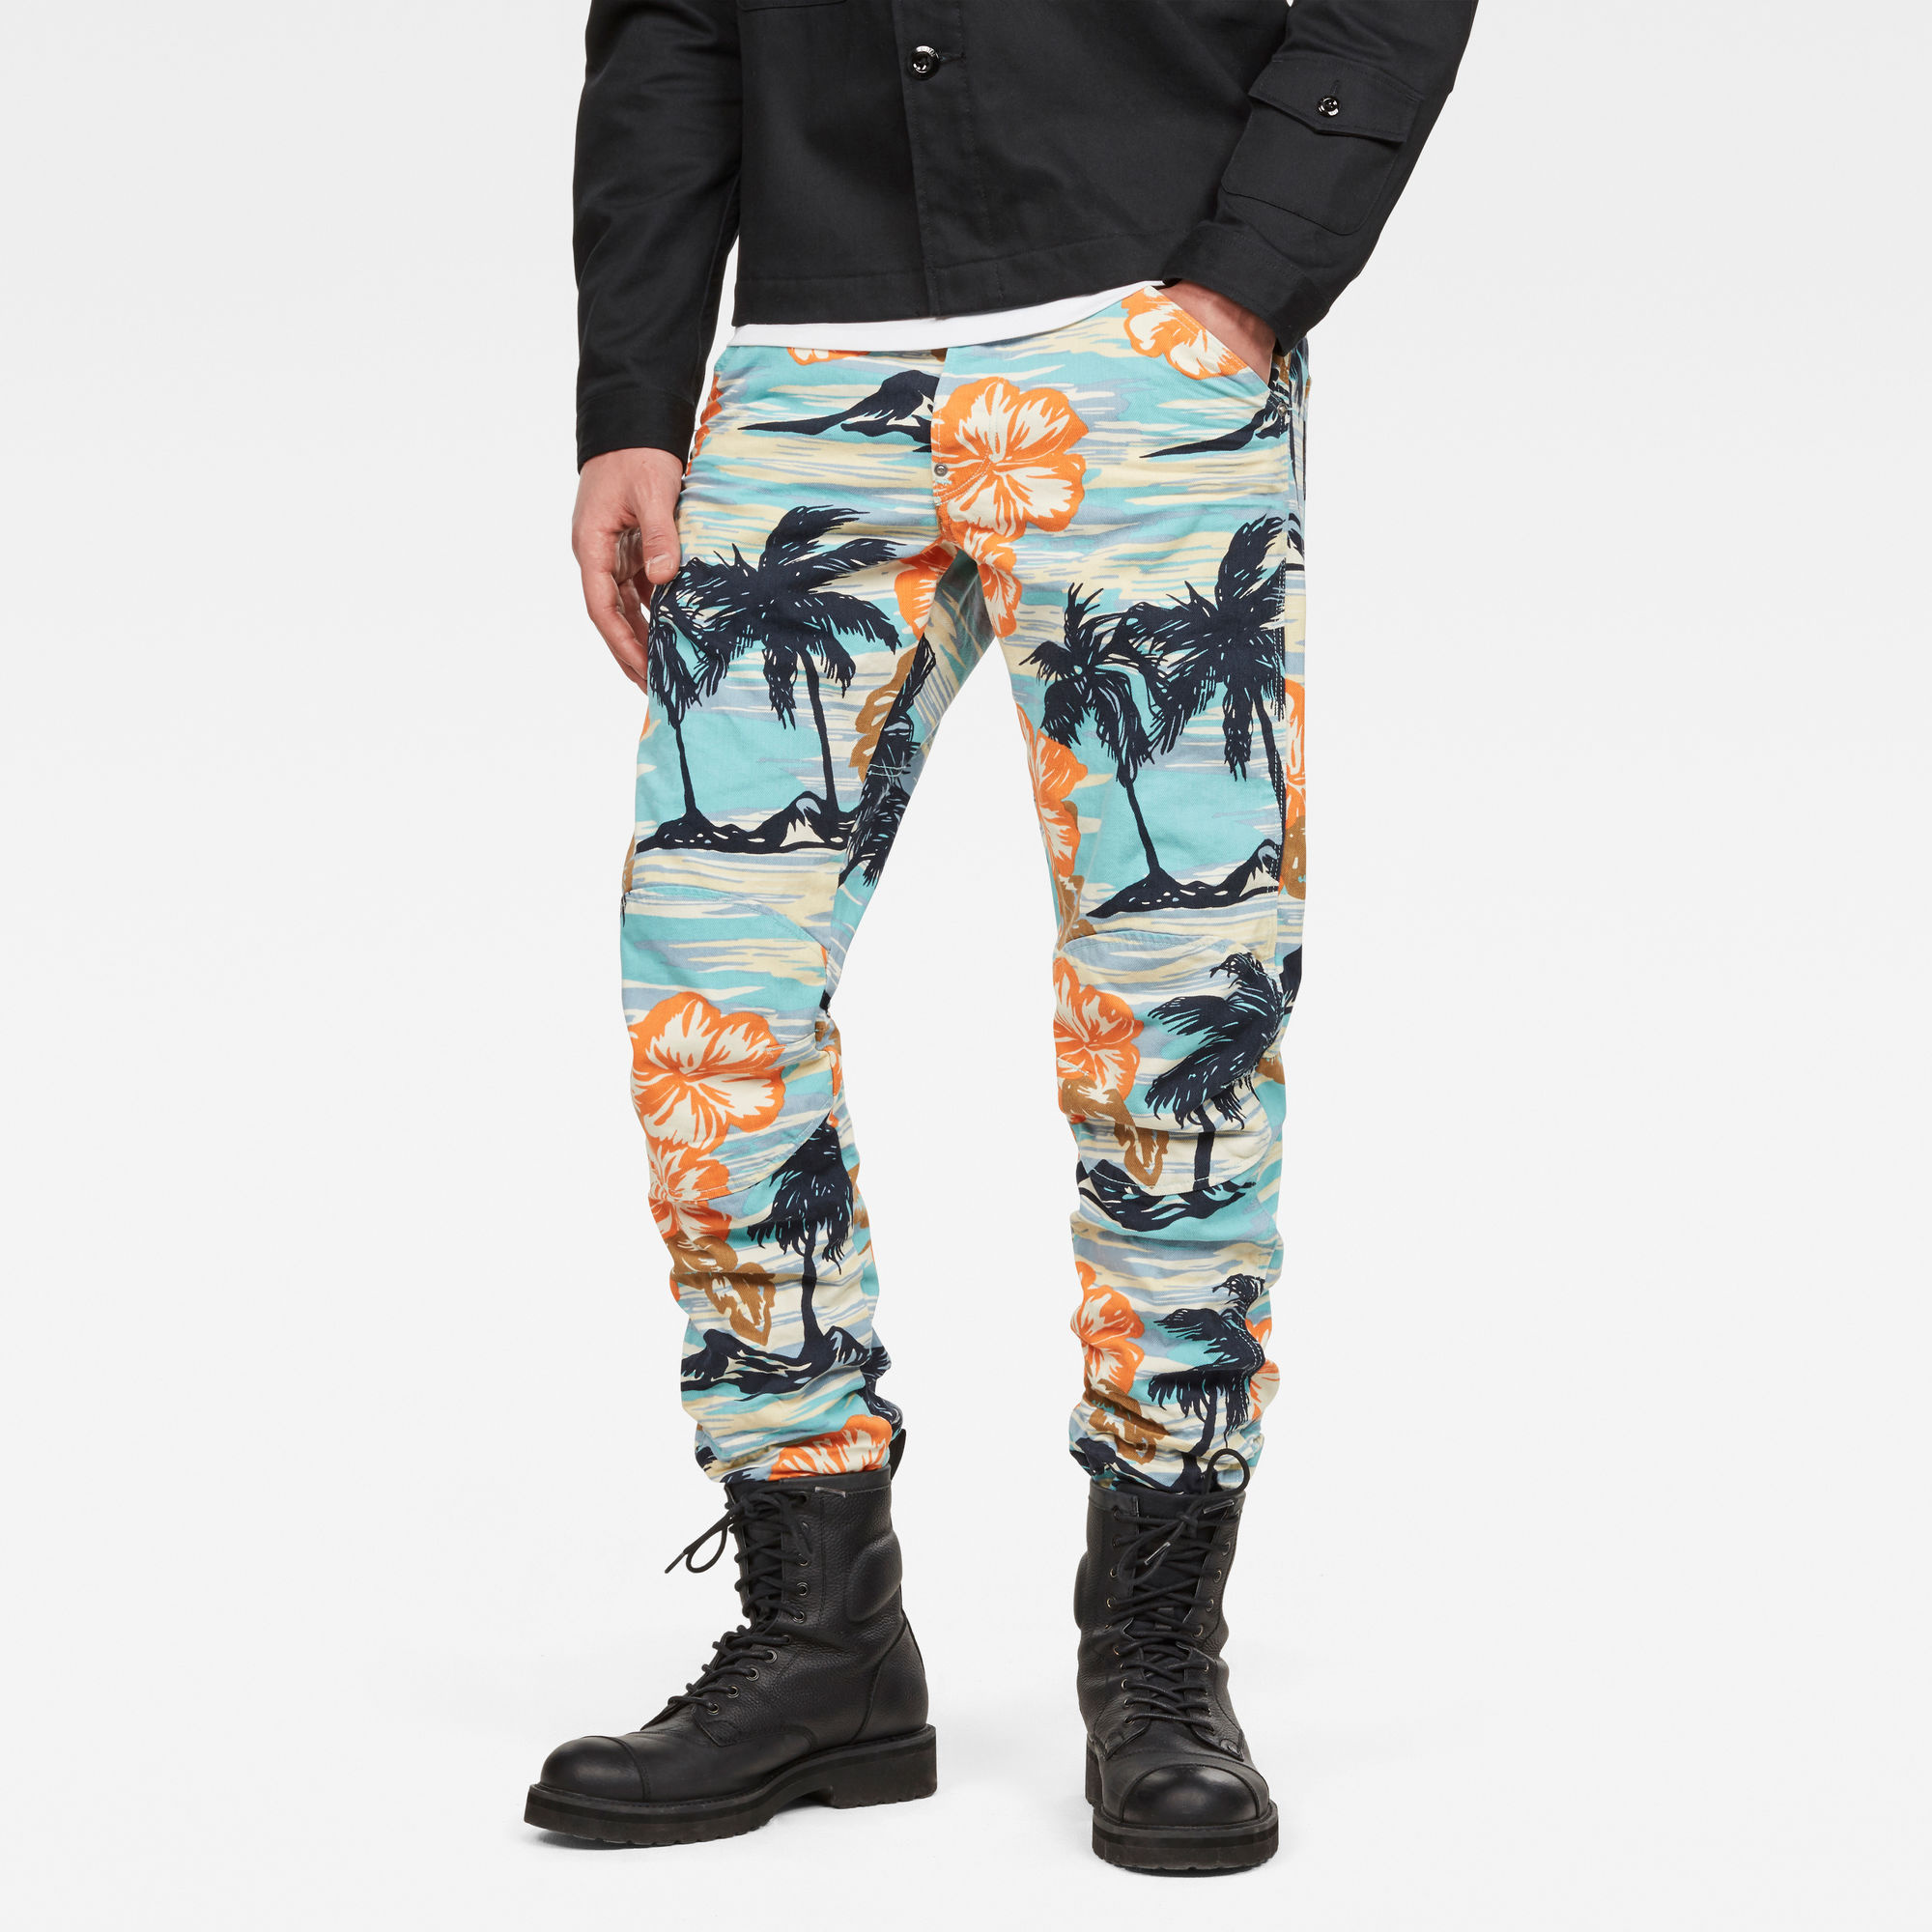 Image of G Star Raw 5622 3D Tapered Color Jeans